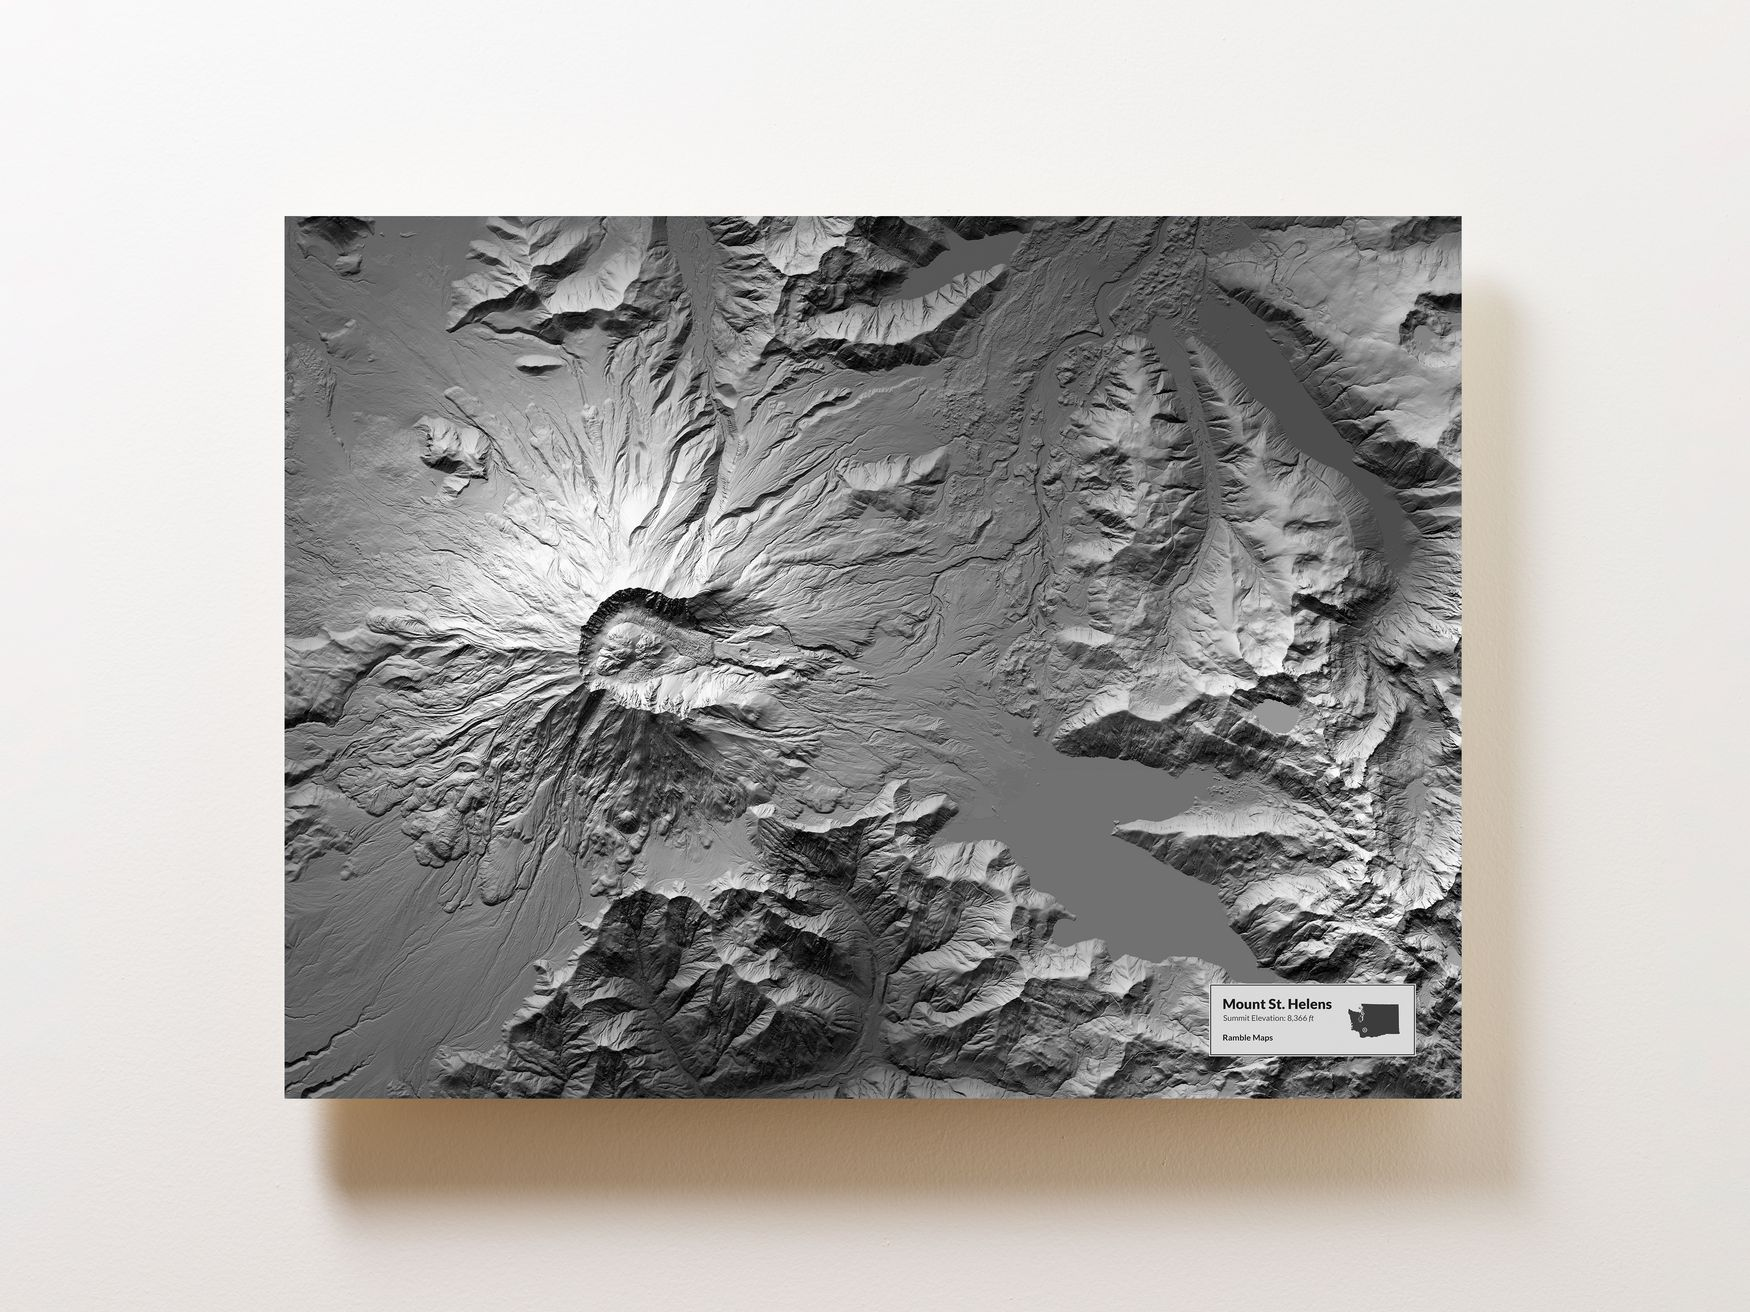 Mount St. Helens Wall Map